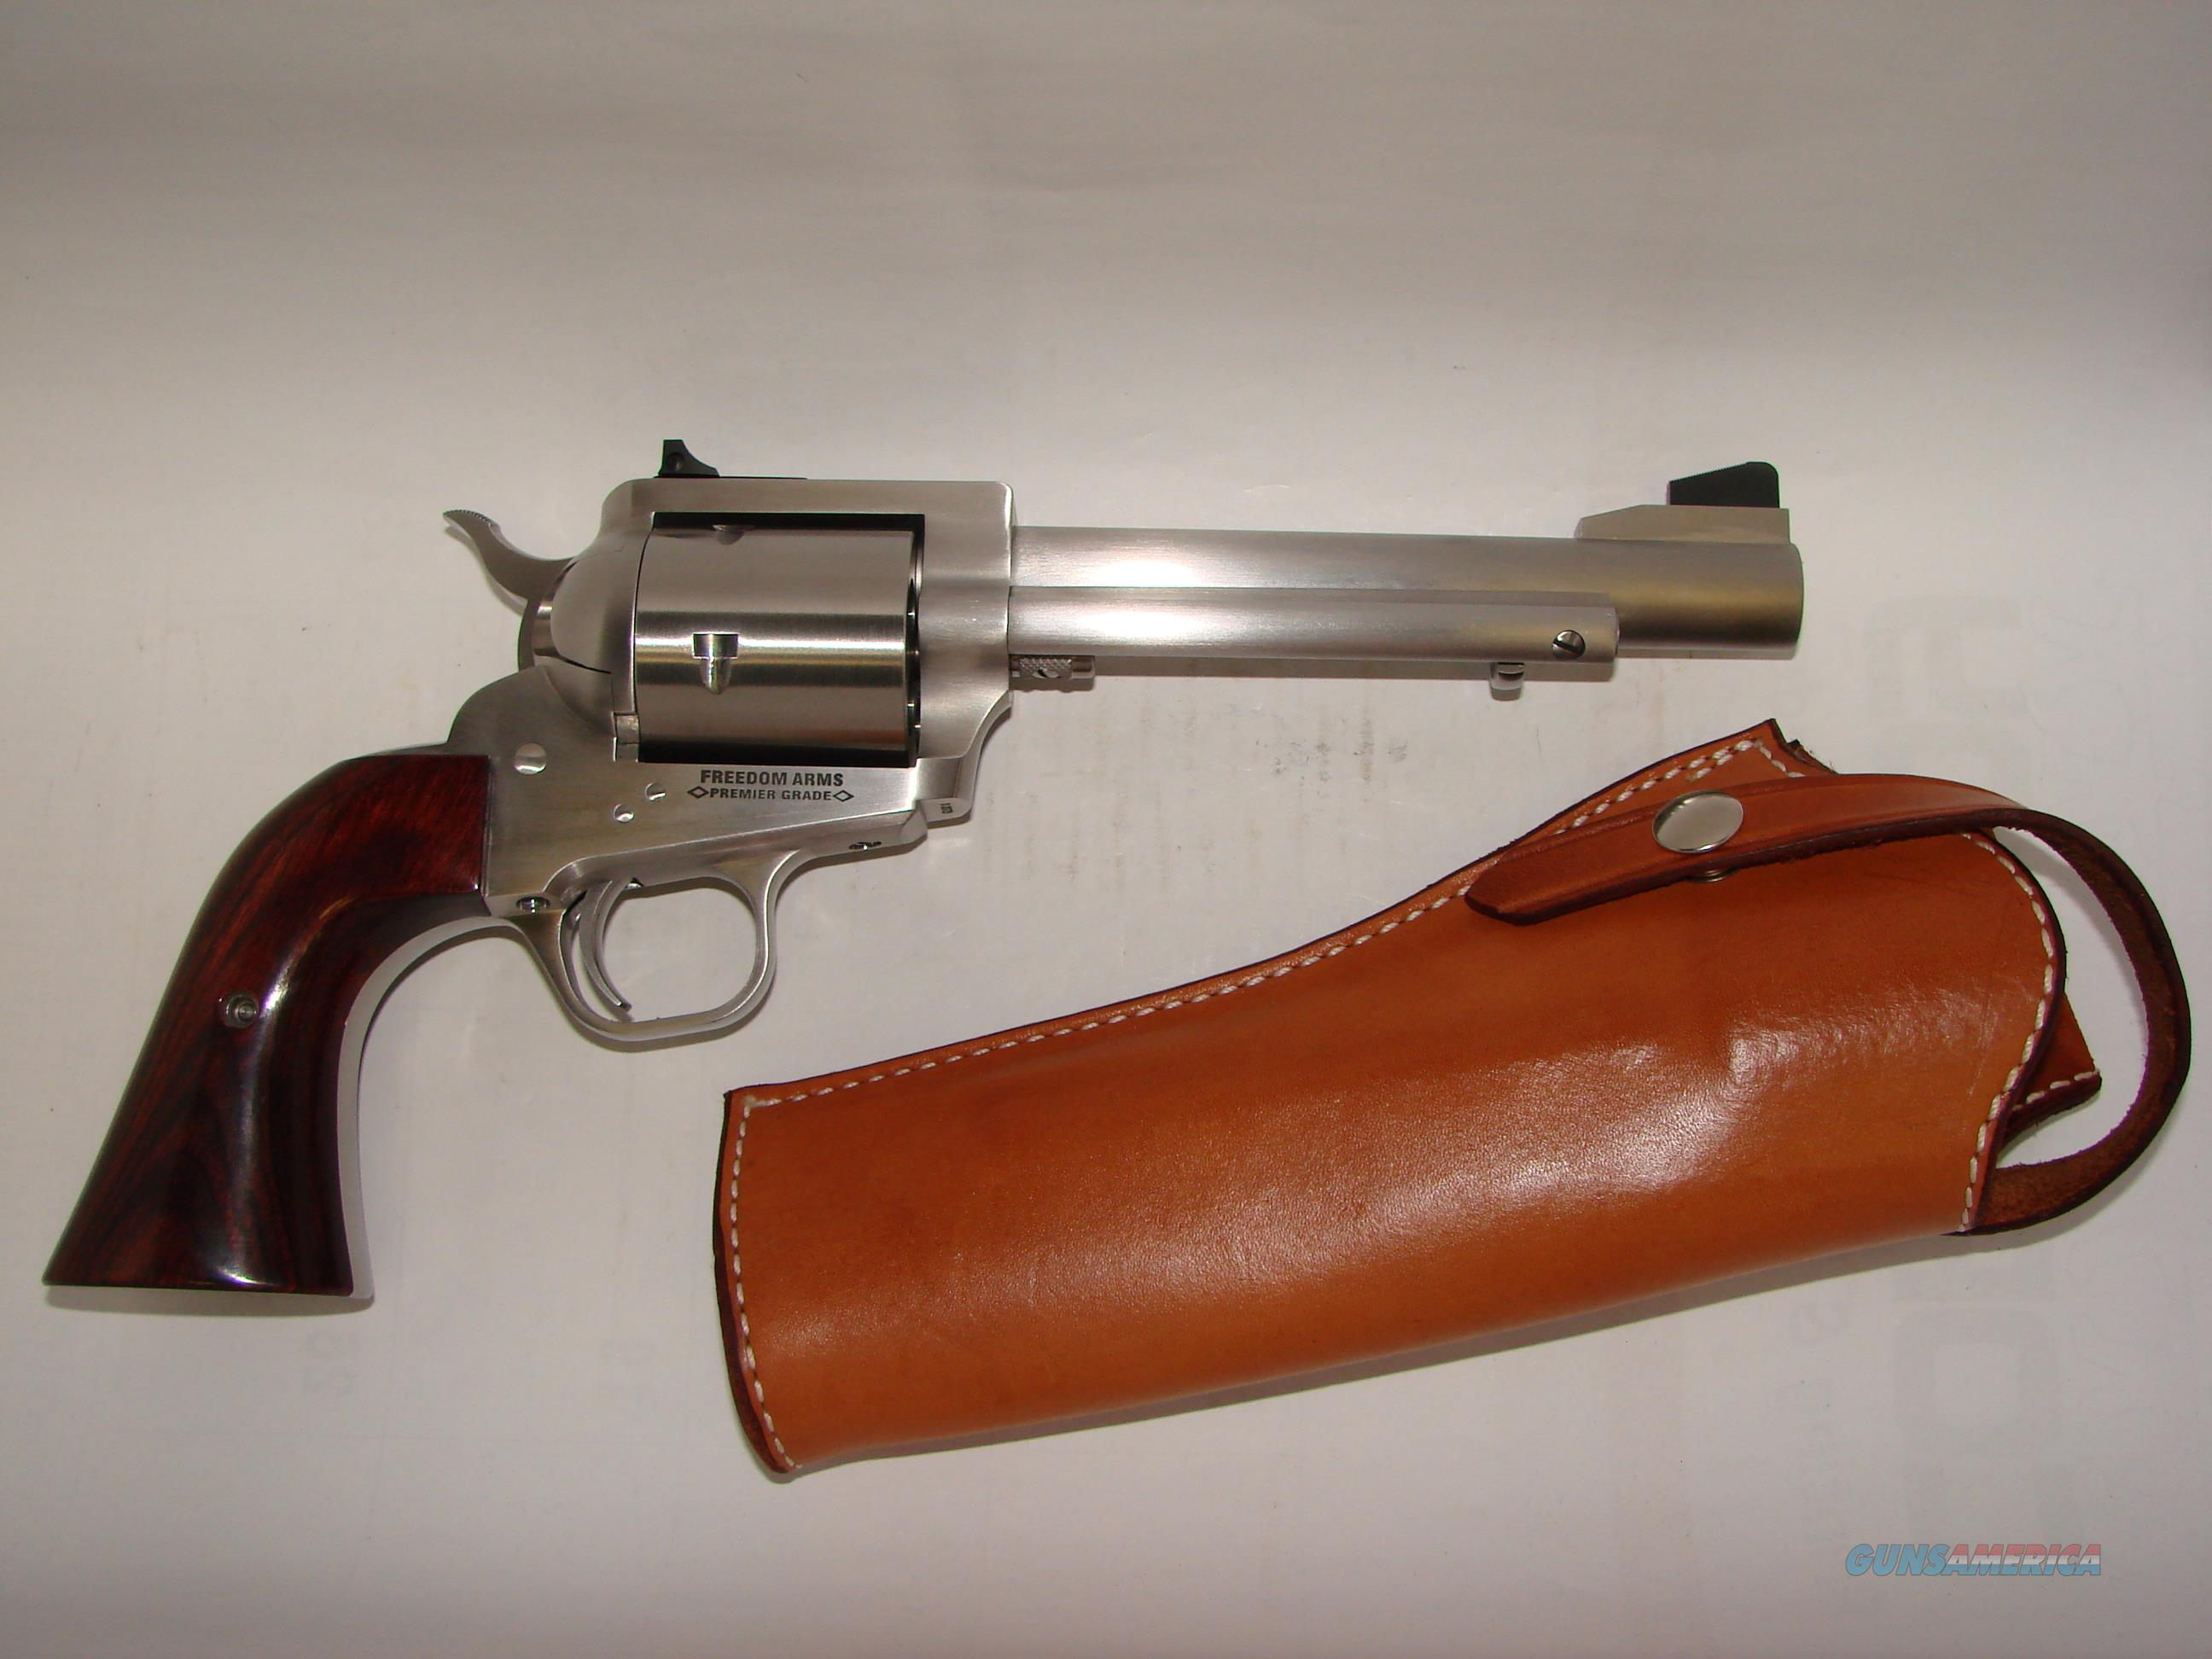 Freedom Arms 83 454Casull  Guns > Pistols > Freedom Arms Pistols